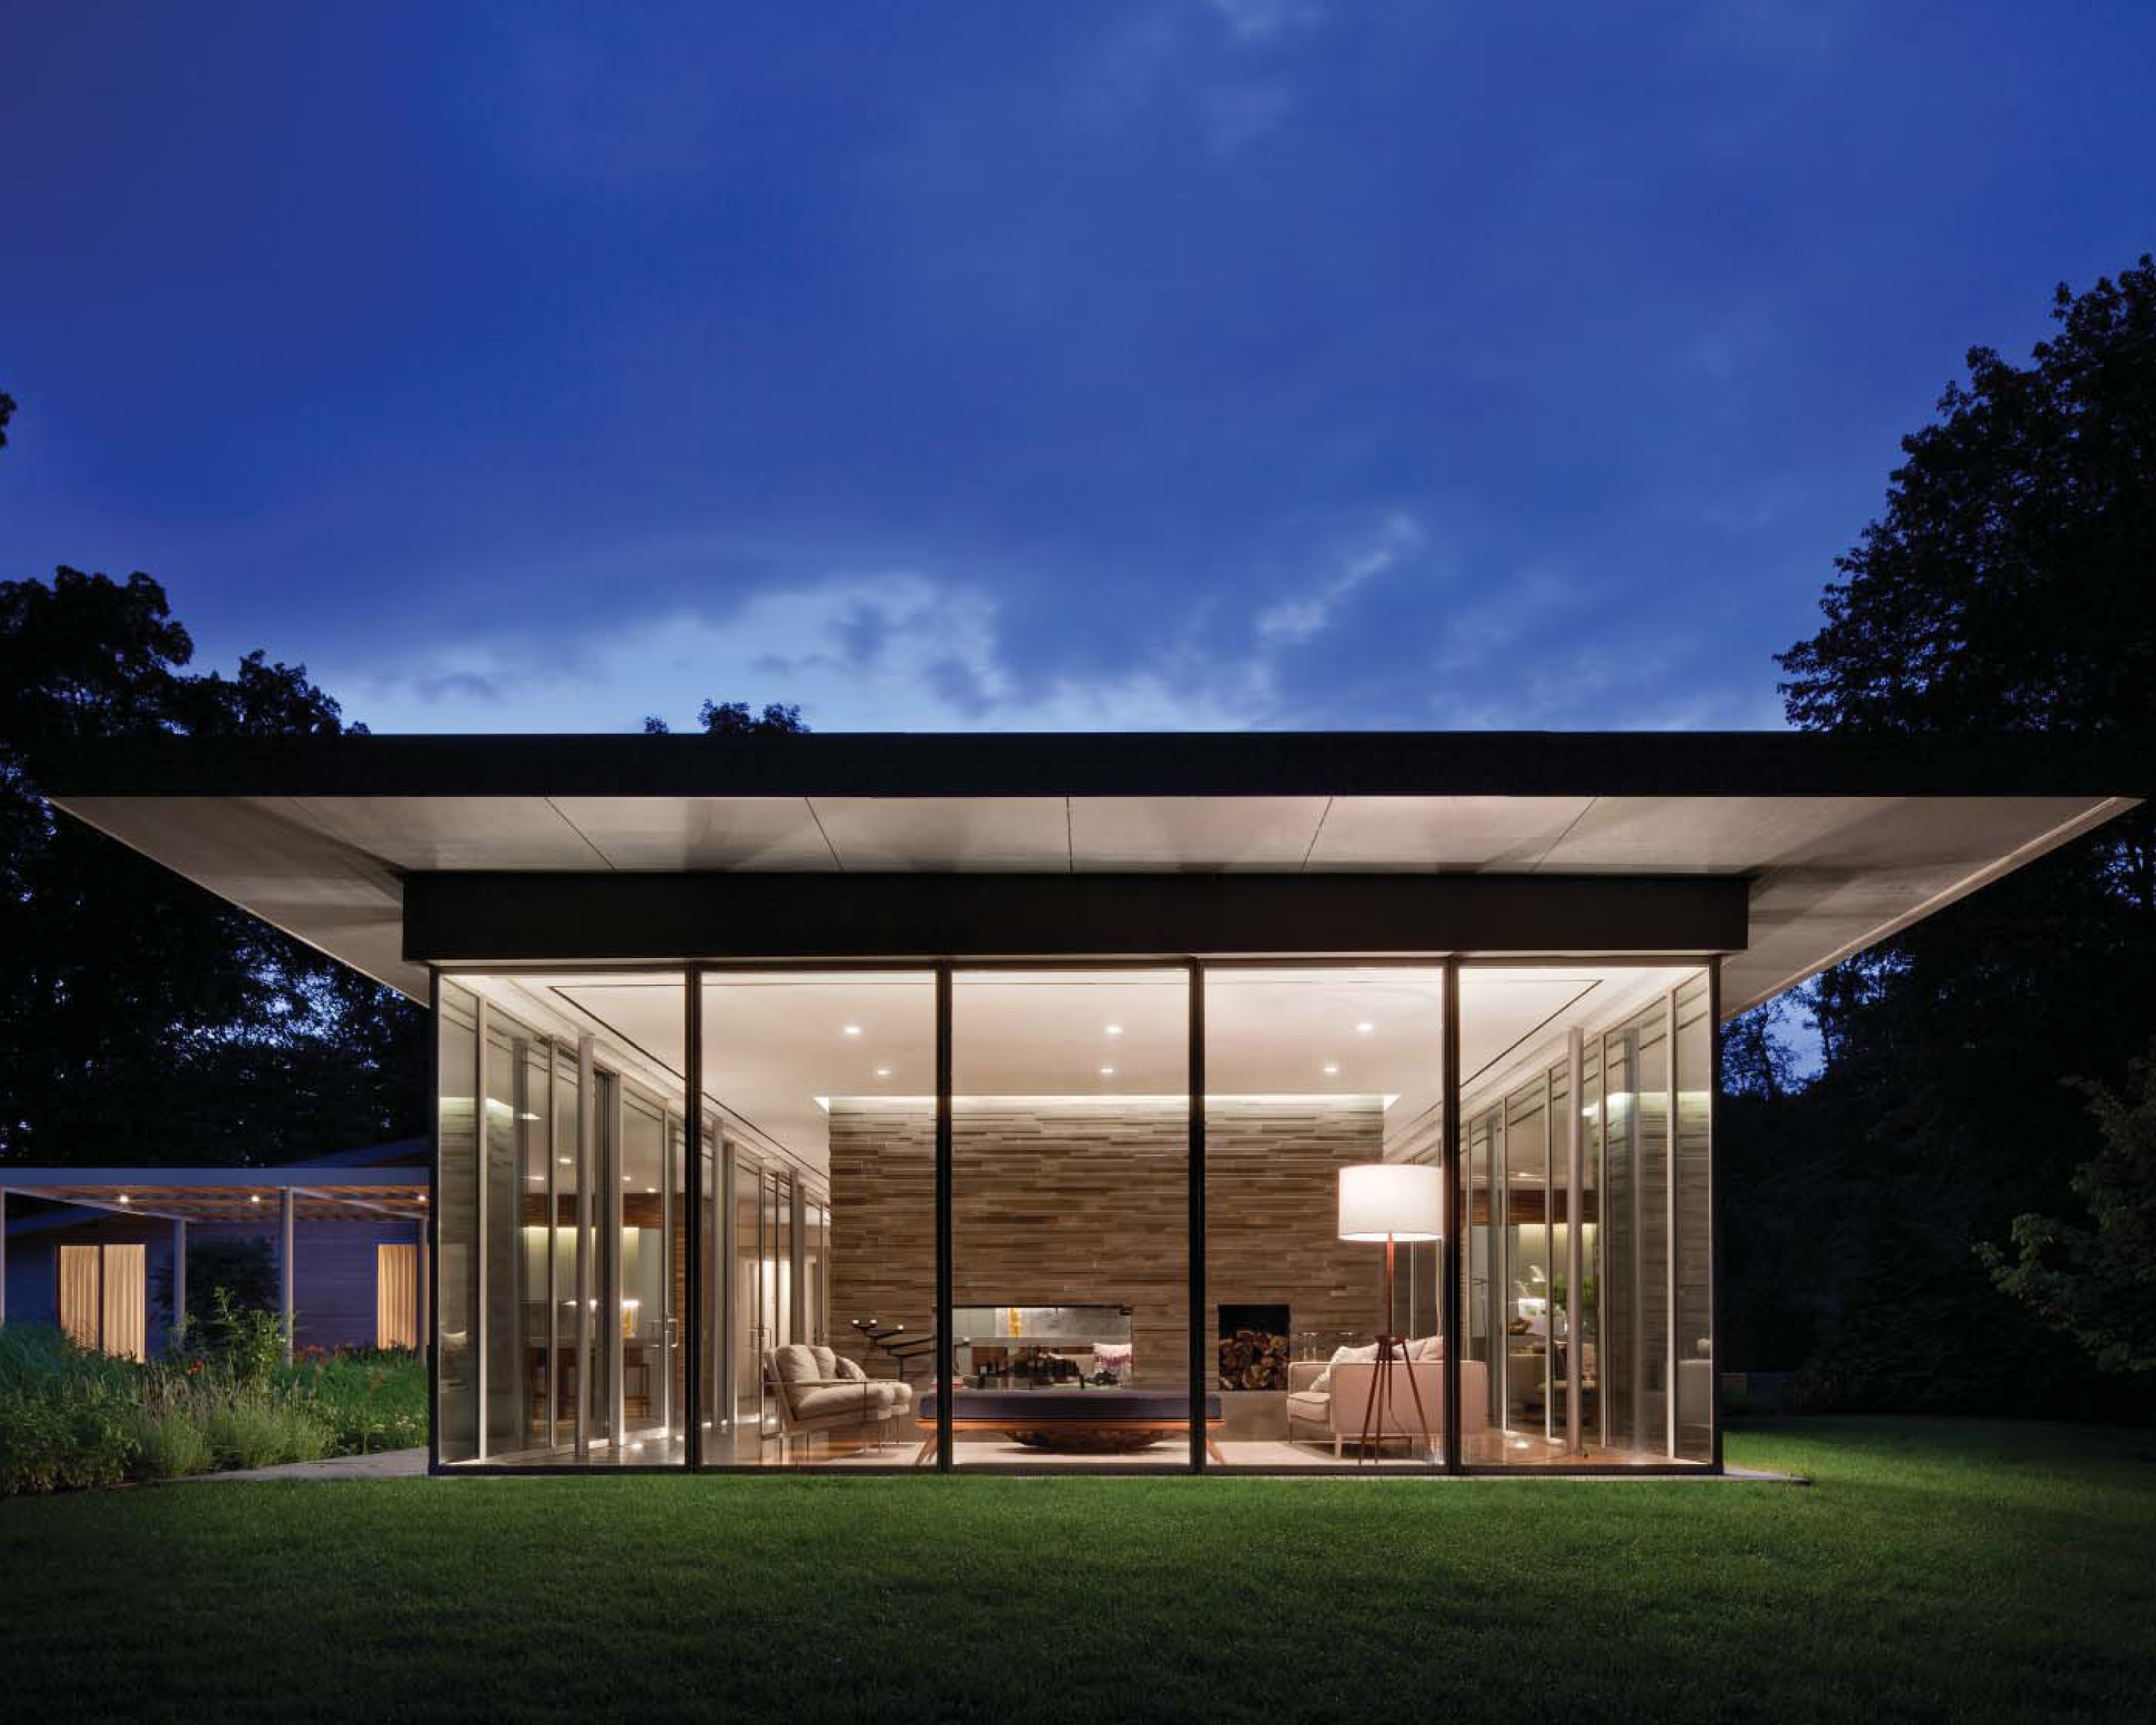 Sands point residence residential architect ohlhausen for Residential architect design awards